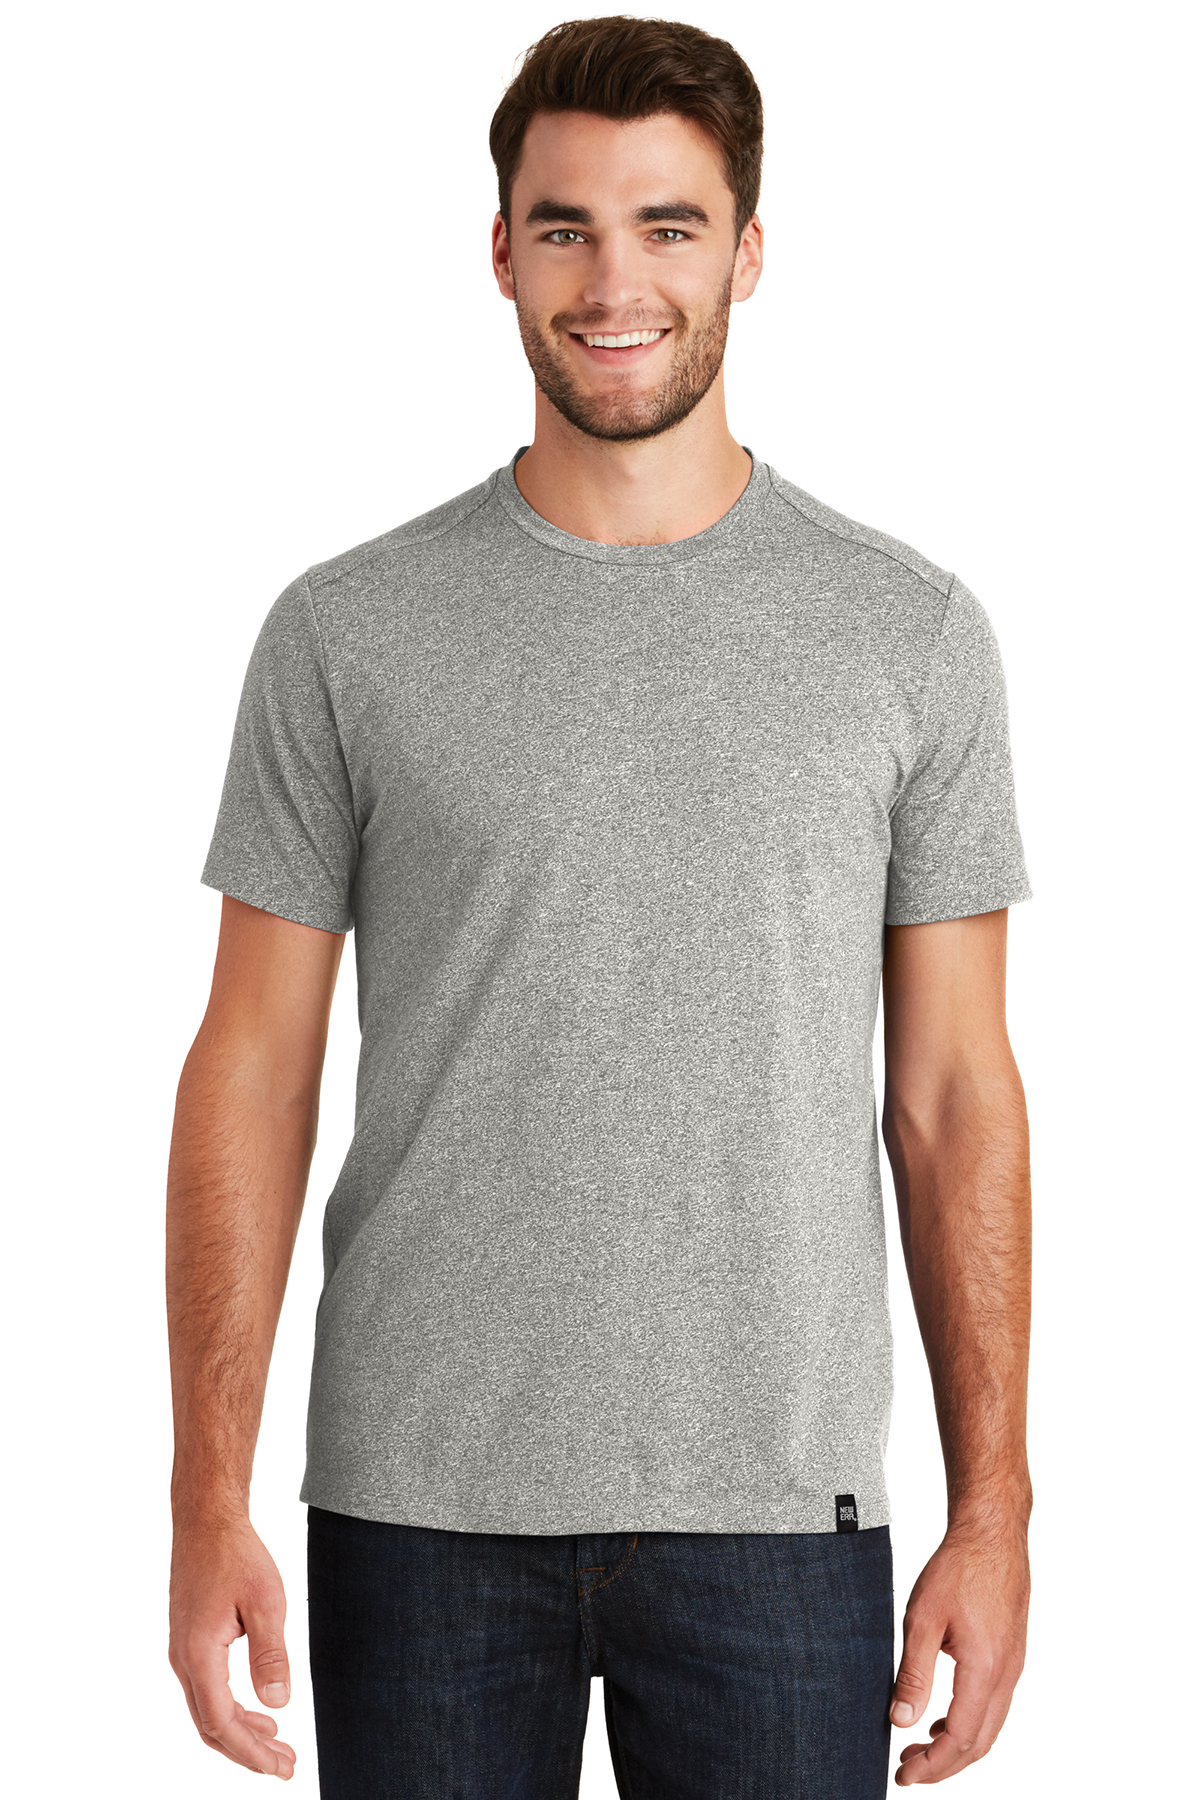 New Era NEA100 - Men's Heritage Blend Crew Tee